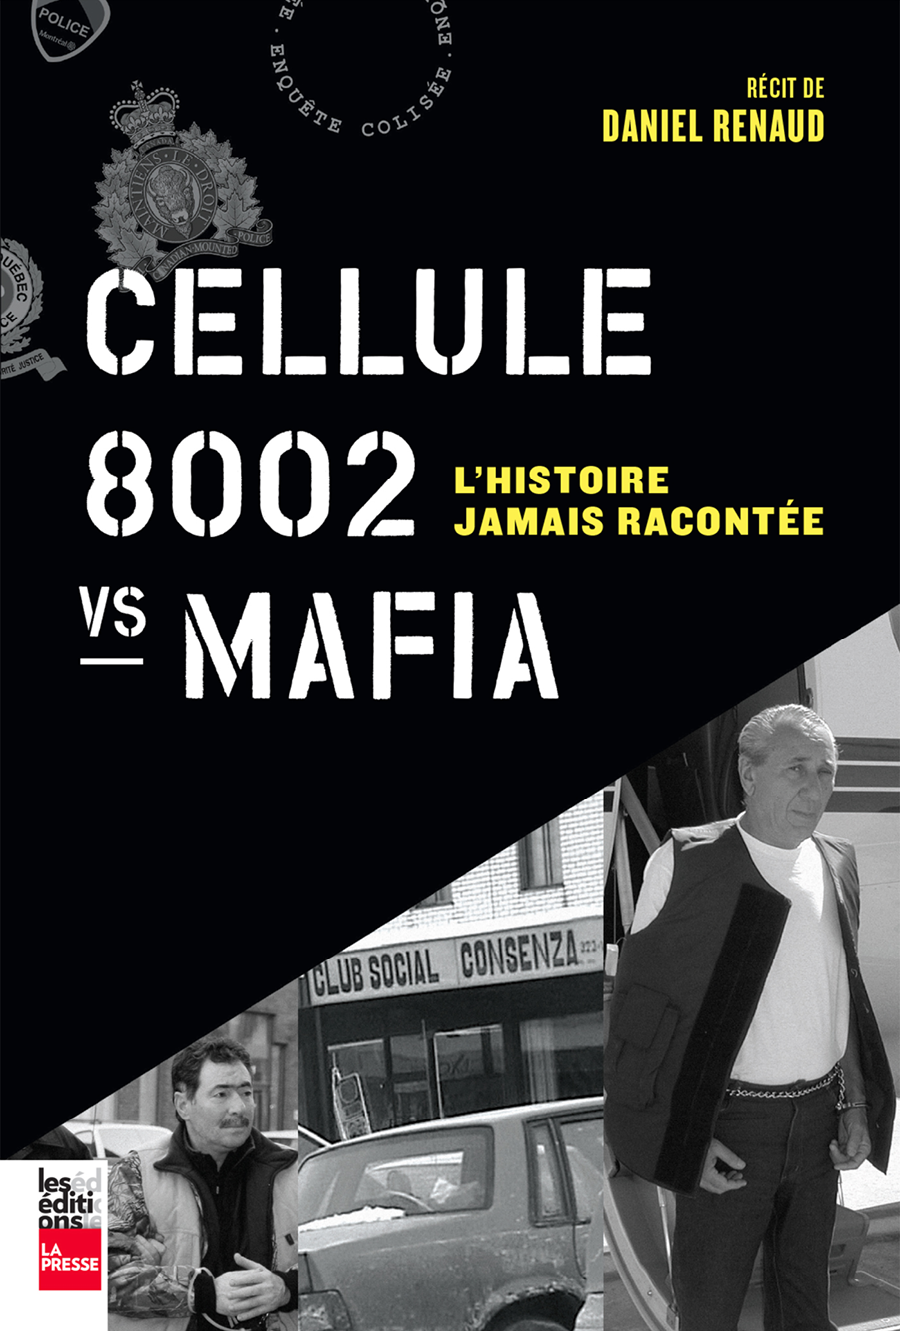 Cellule 8002 vs mafia